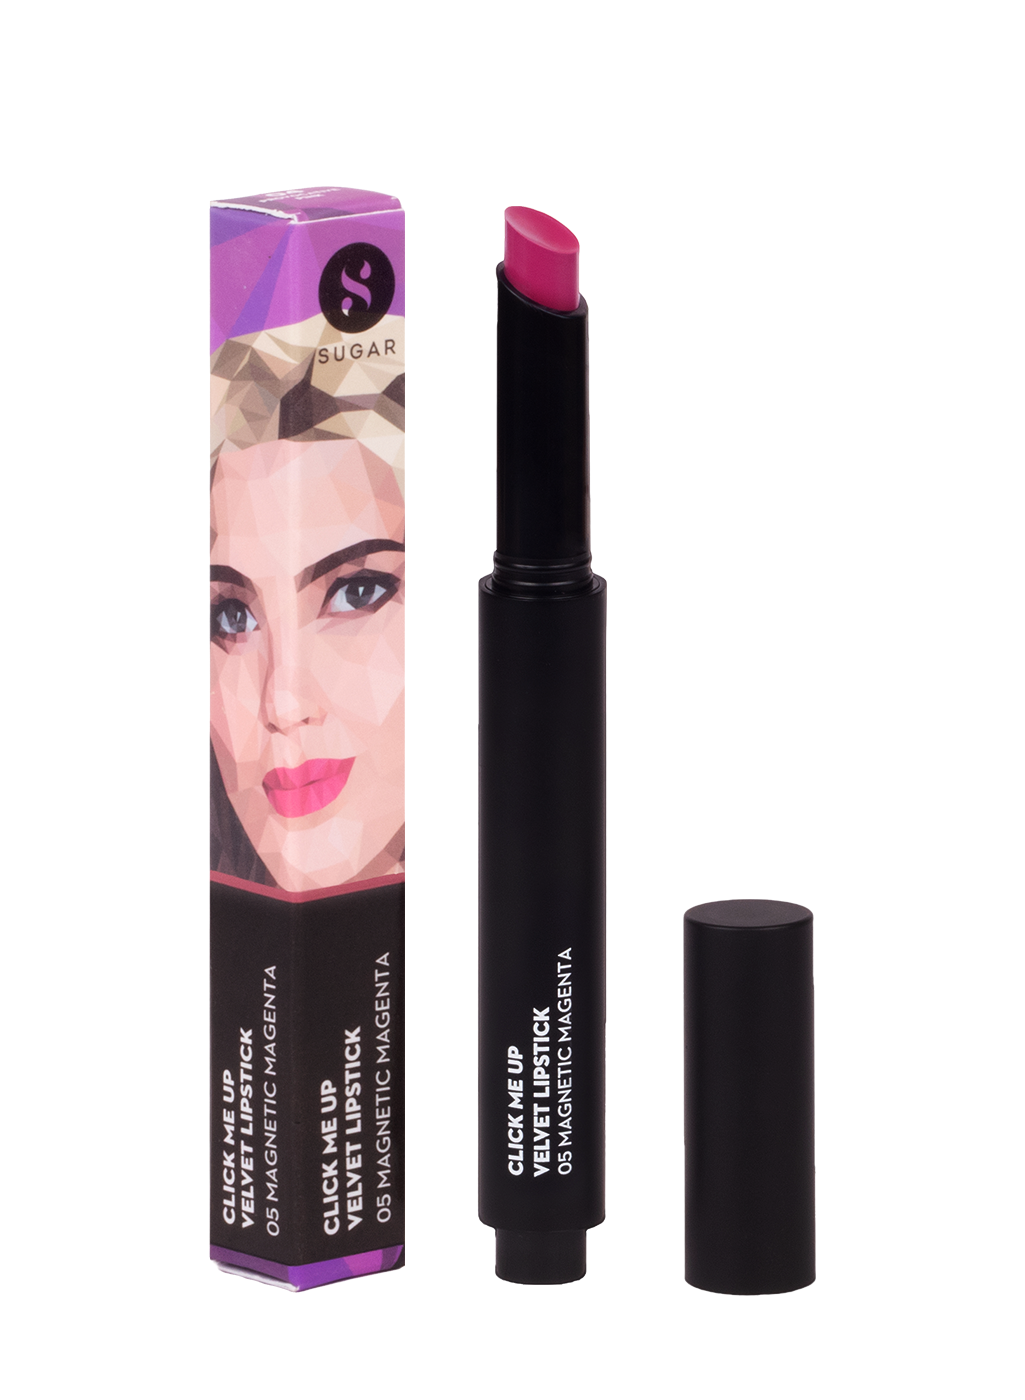 SUGAR Click Me Up Velvet Lipstick - 05 Magnetic Magenta (Deep Fuchsia Pink)